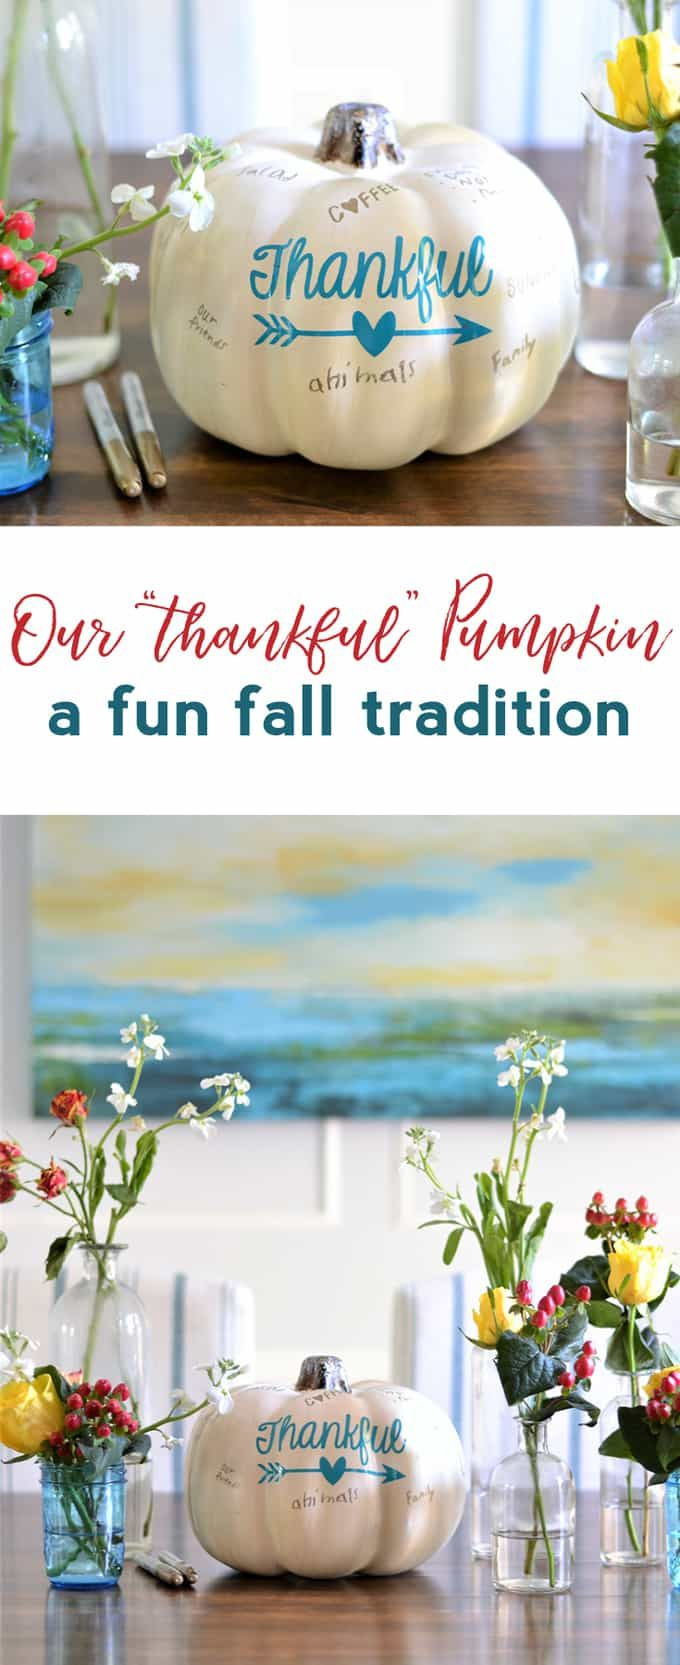 thanksgiving centerpiece | thankful pumpkin | pumpkin crafts | fall decor | thanksgiving tablescape | cultivate gratitude | thankfulness | gratitude practice for kids | pumpkin crafts